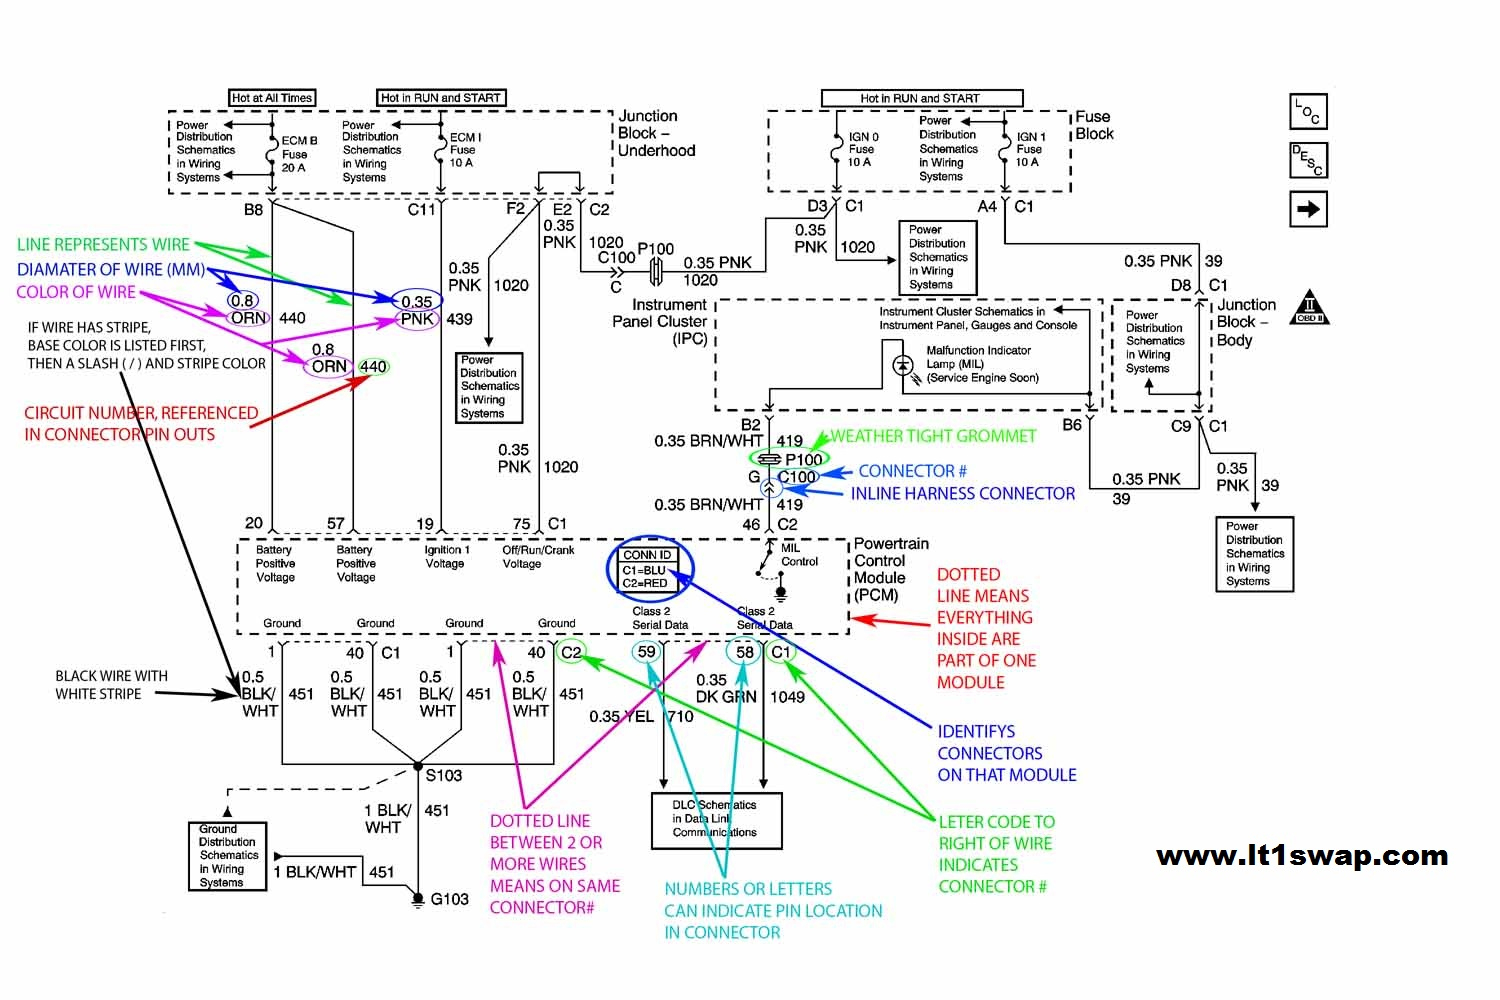 Wiring Harness Information - Ls Wiring Harness Diagram